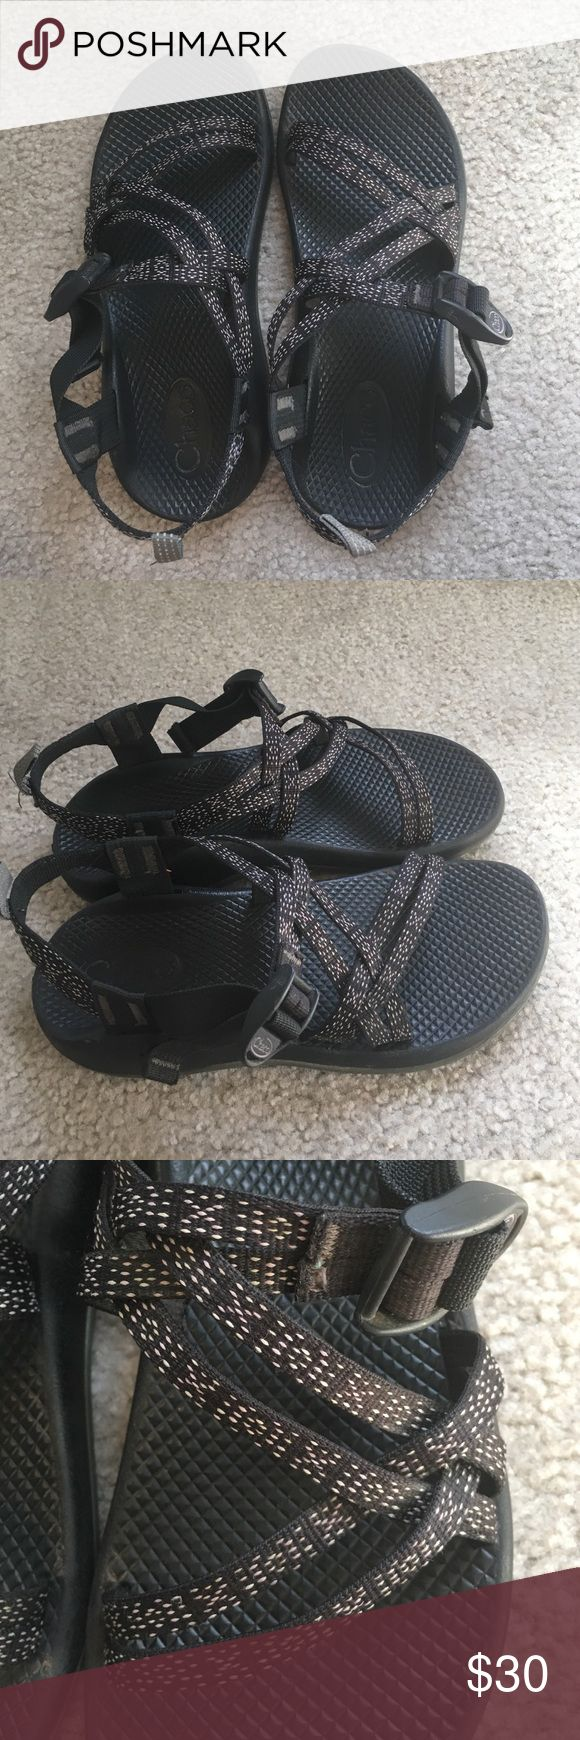 Kids Chacos Size 5 Hugs & Kisses Great quality chacos in perfect condition. Lightly used. The black, light pink, and white print makes it easy to pair them! Size 5 in kids but they fit me and I am a size 7 in women's! Chacos Shoes Sandals